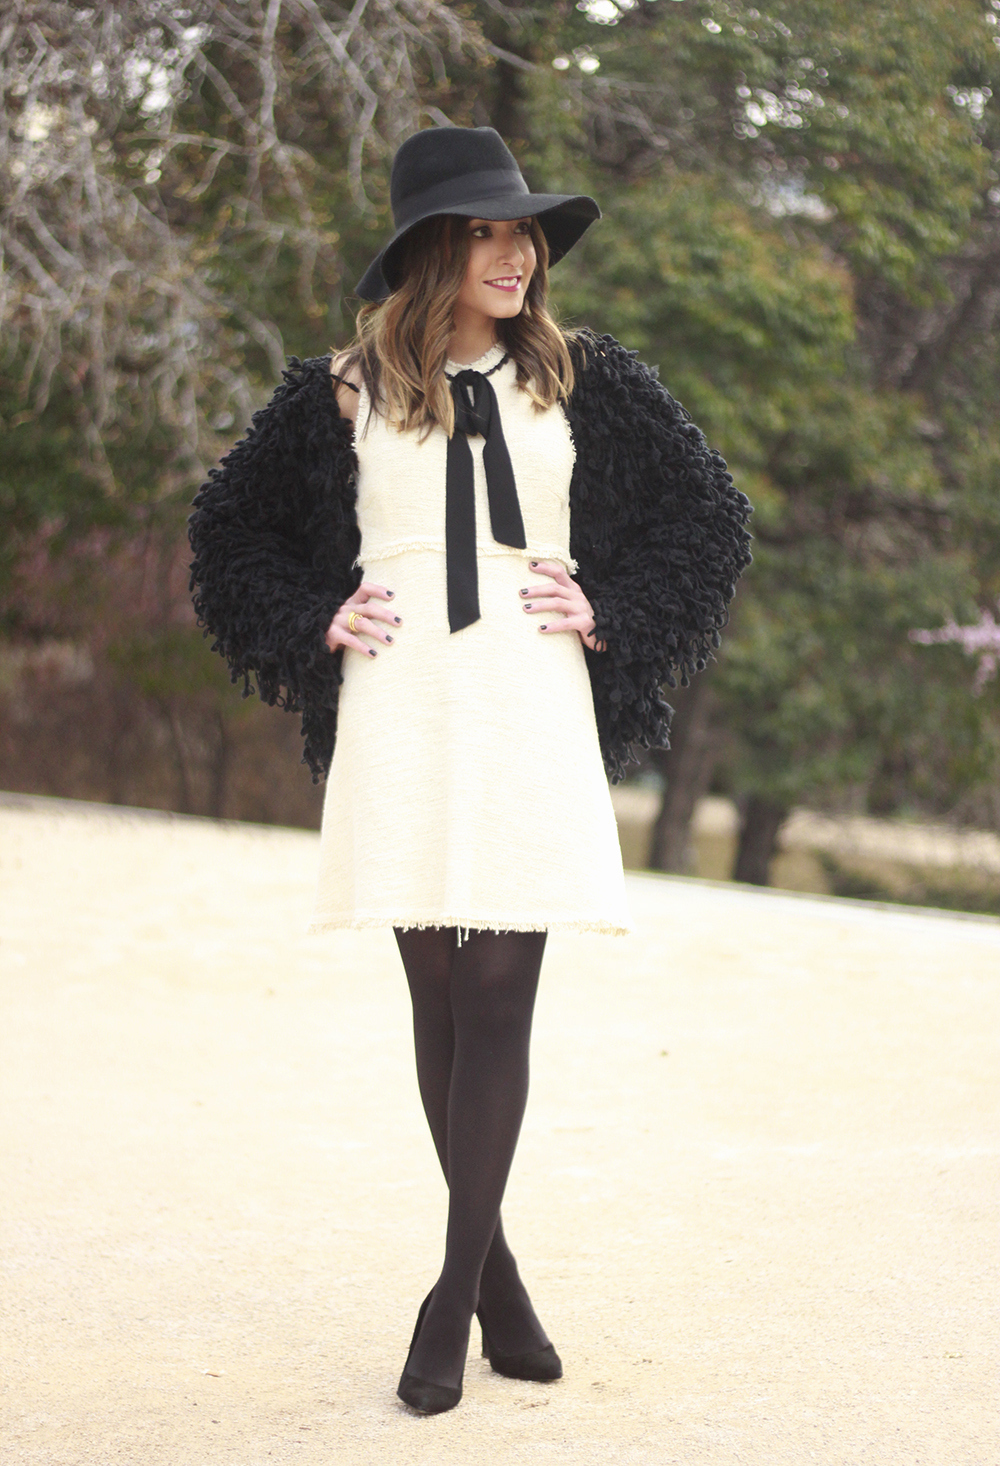 White tweed dress with bow black jacket hat outfit16